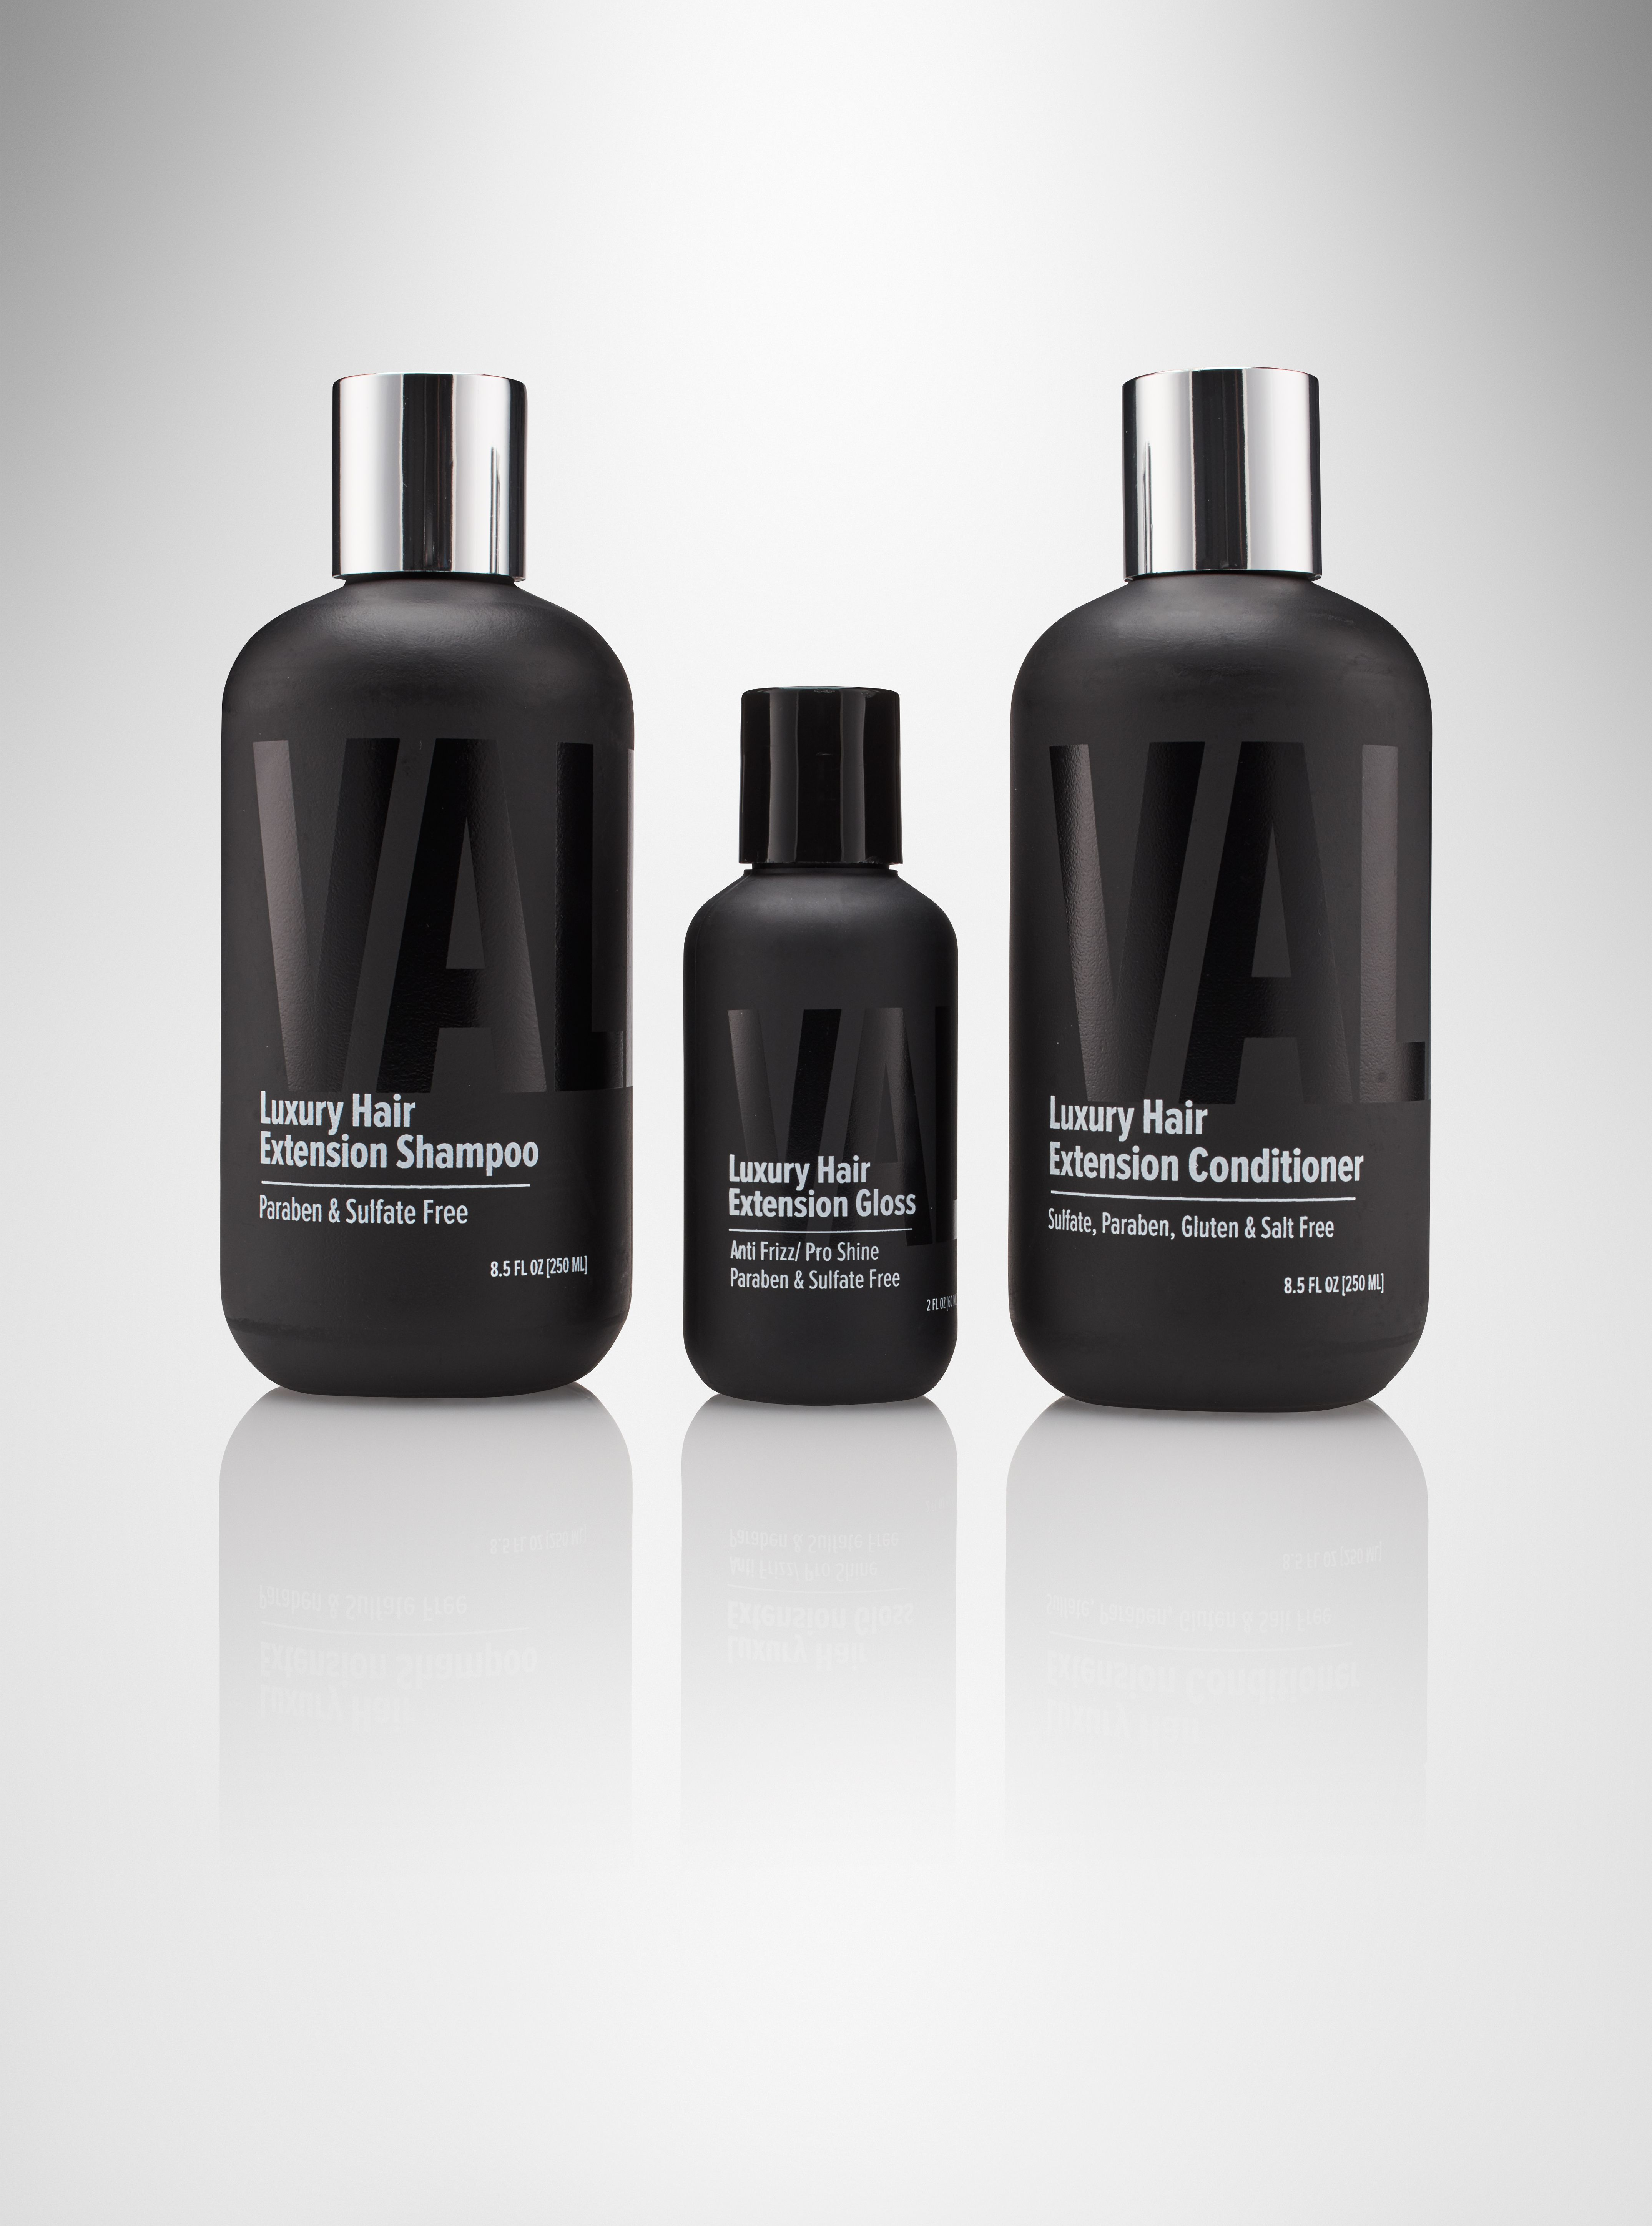 Shampoo Conditioner Gloss Valente Luxury Hair Extension Care